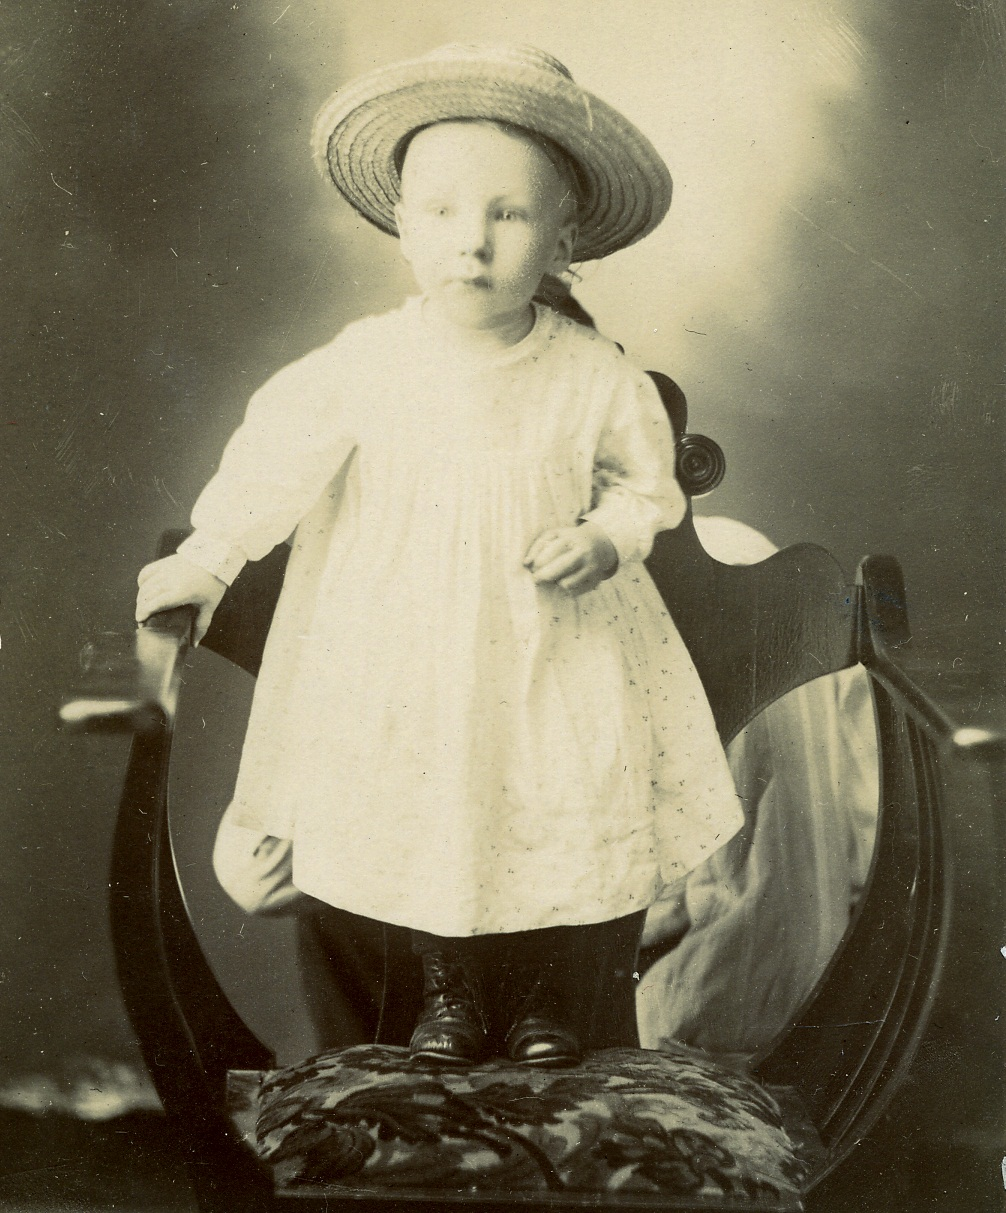 August Voigt as a toddler, shortly after his grandmother wrapped him in her shawl for the trip to Indian Territory.